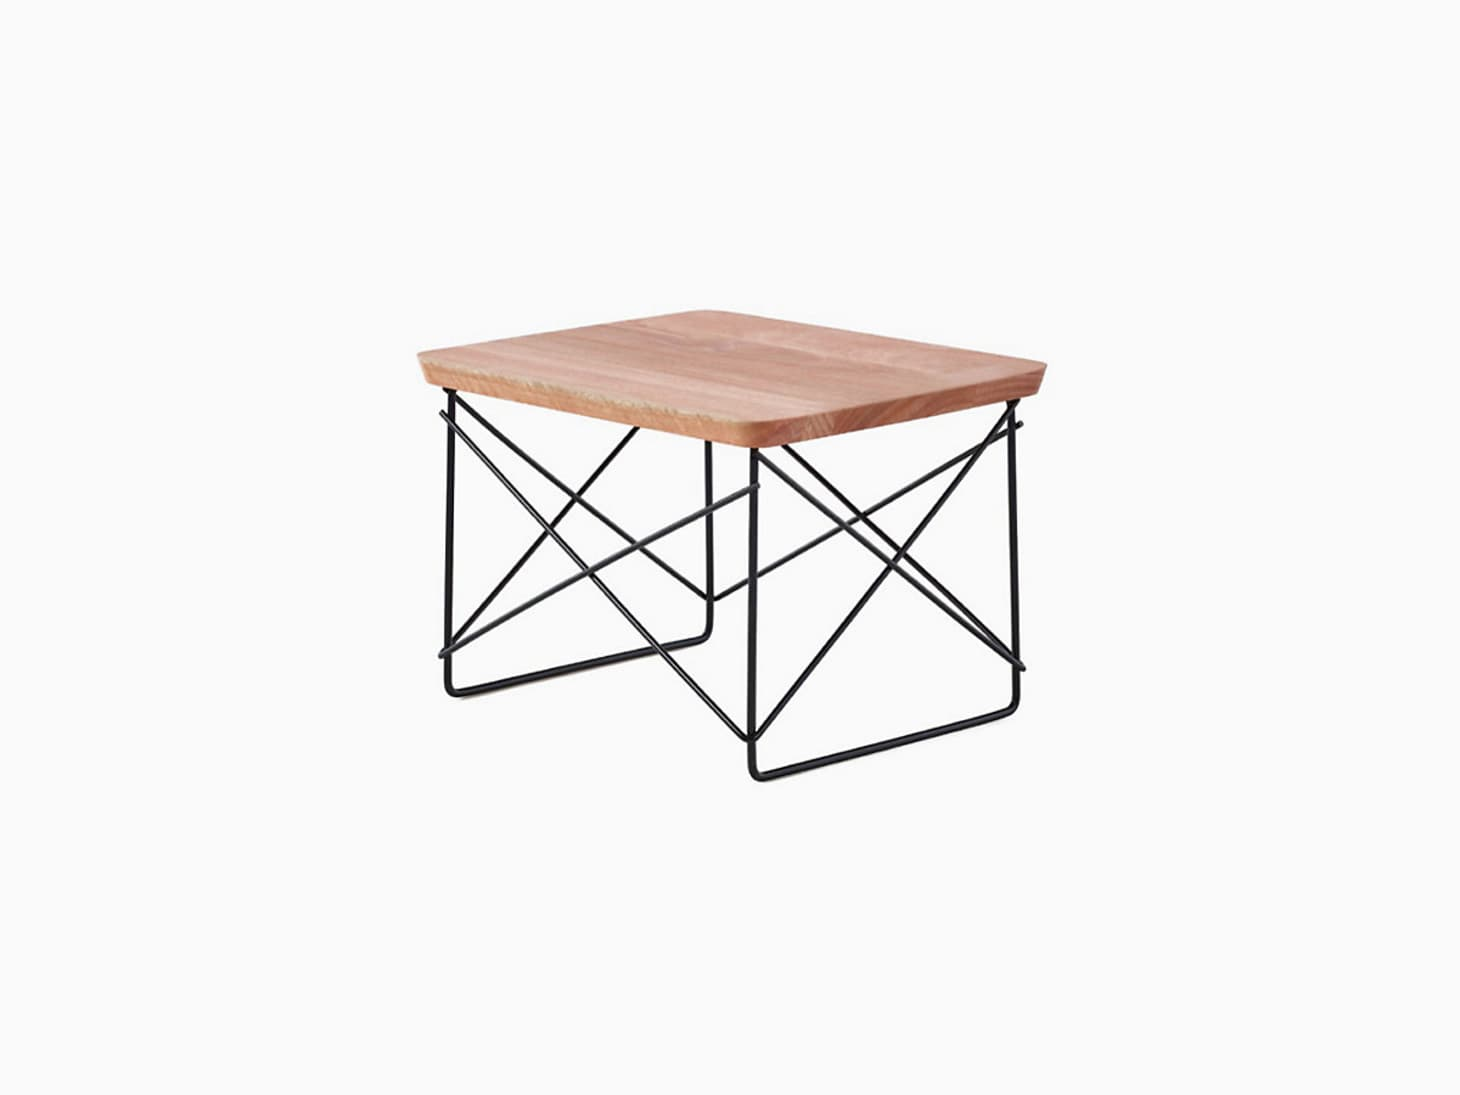 Incredible Eames Tables Made From Trees Harvested At The Eames House Download Free Architecture Designs Scobabritishbridgeorg